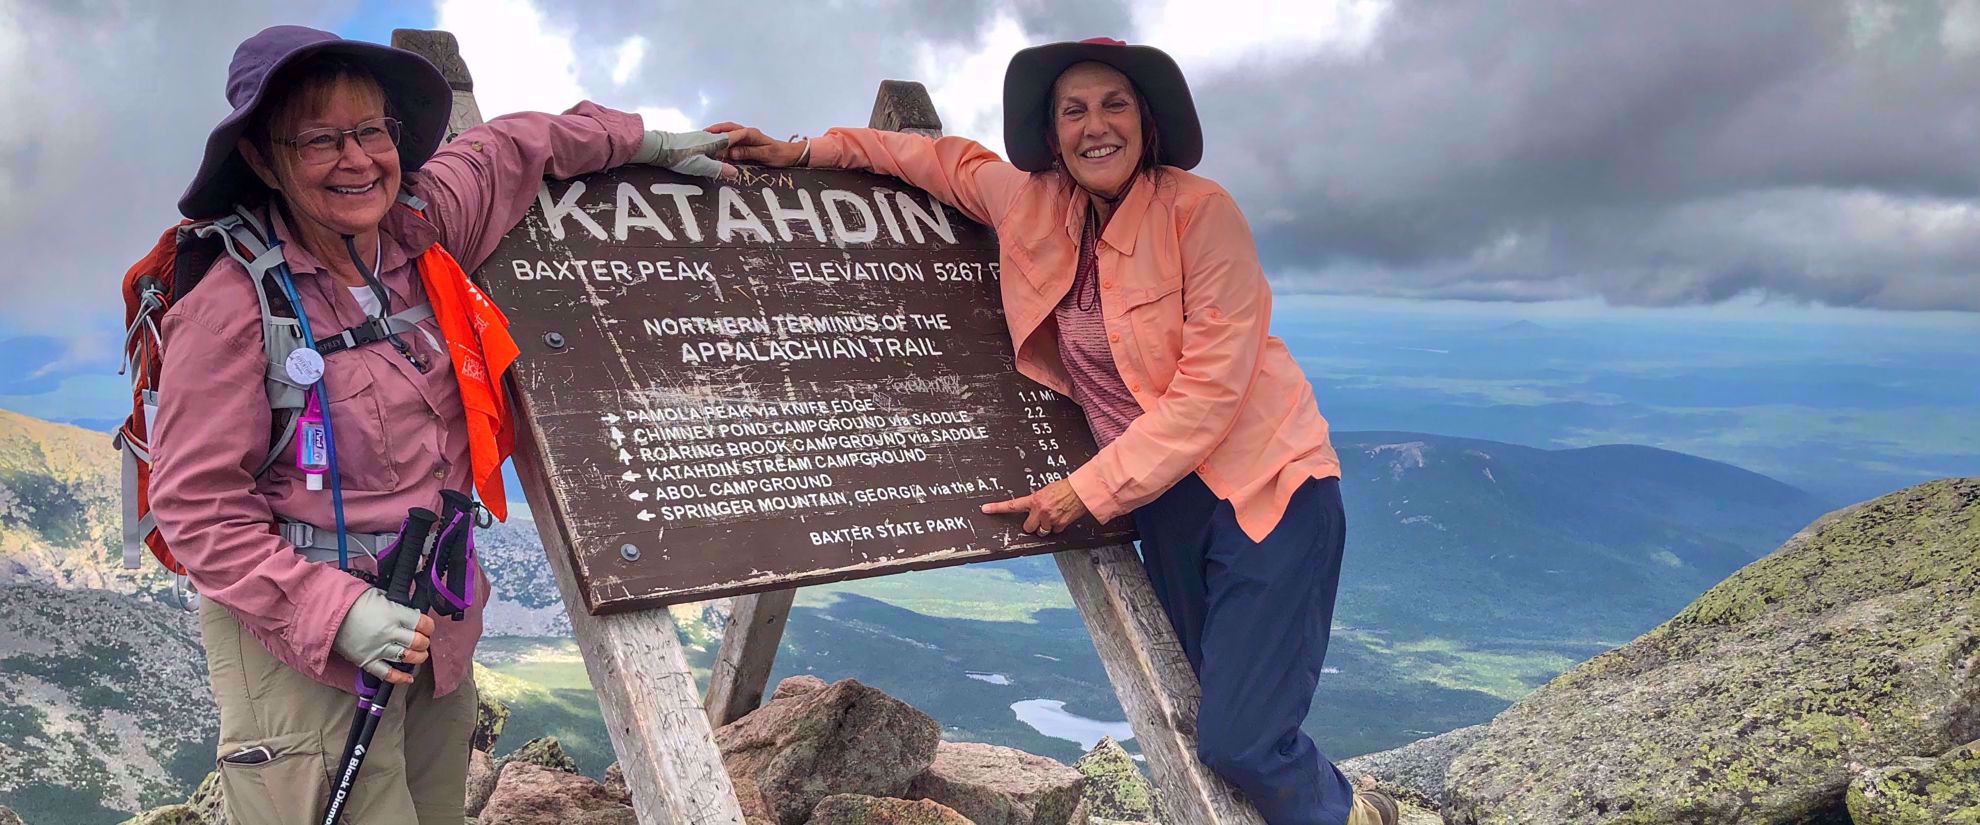 women smiling holding katahdin sign maine